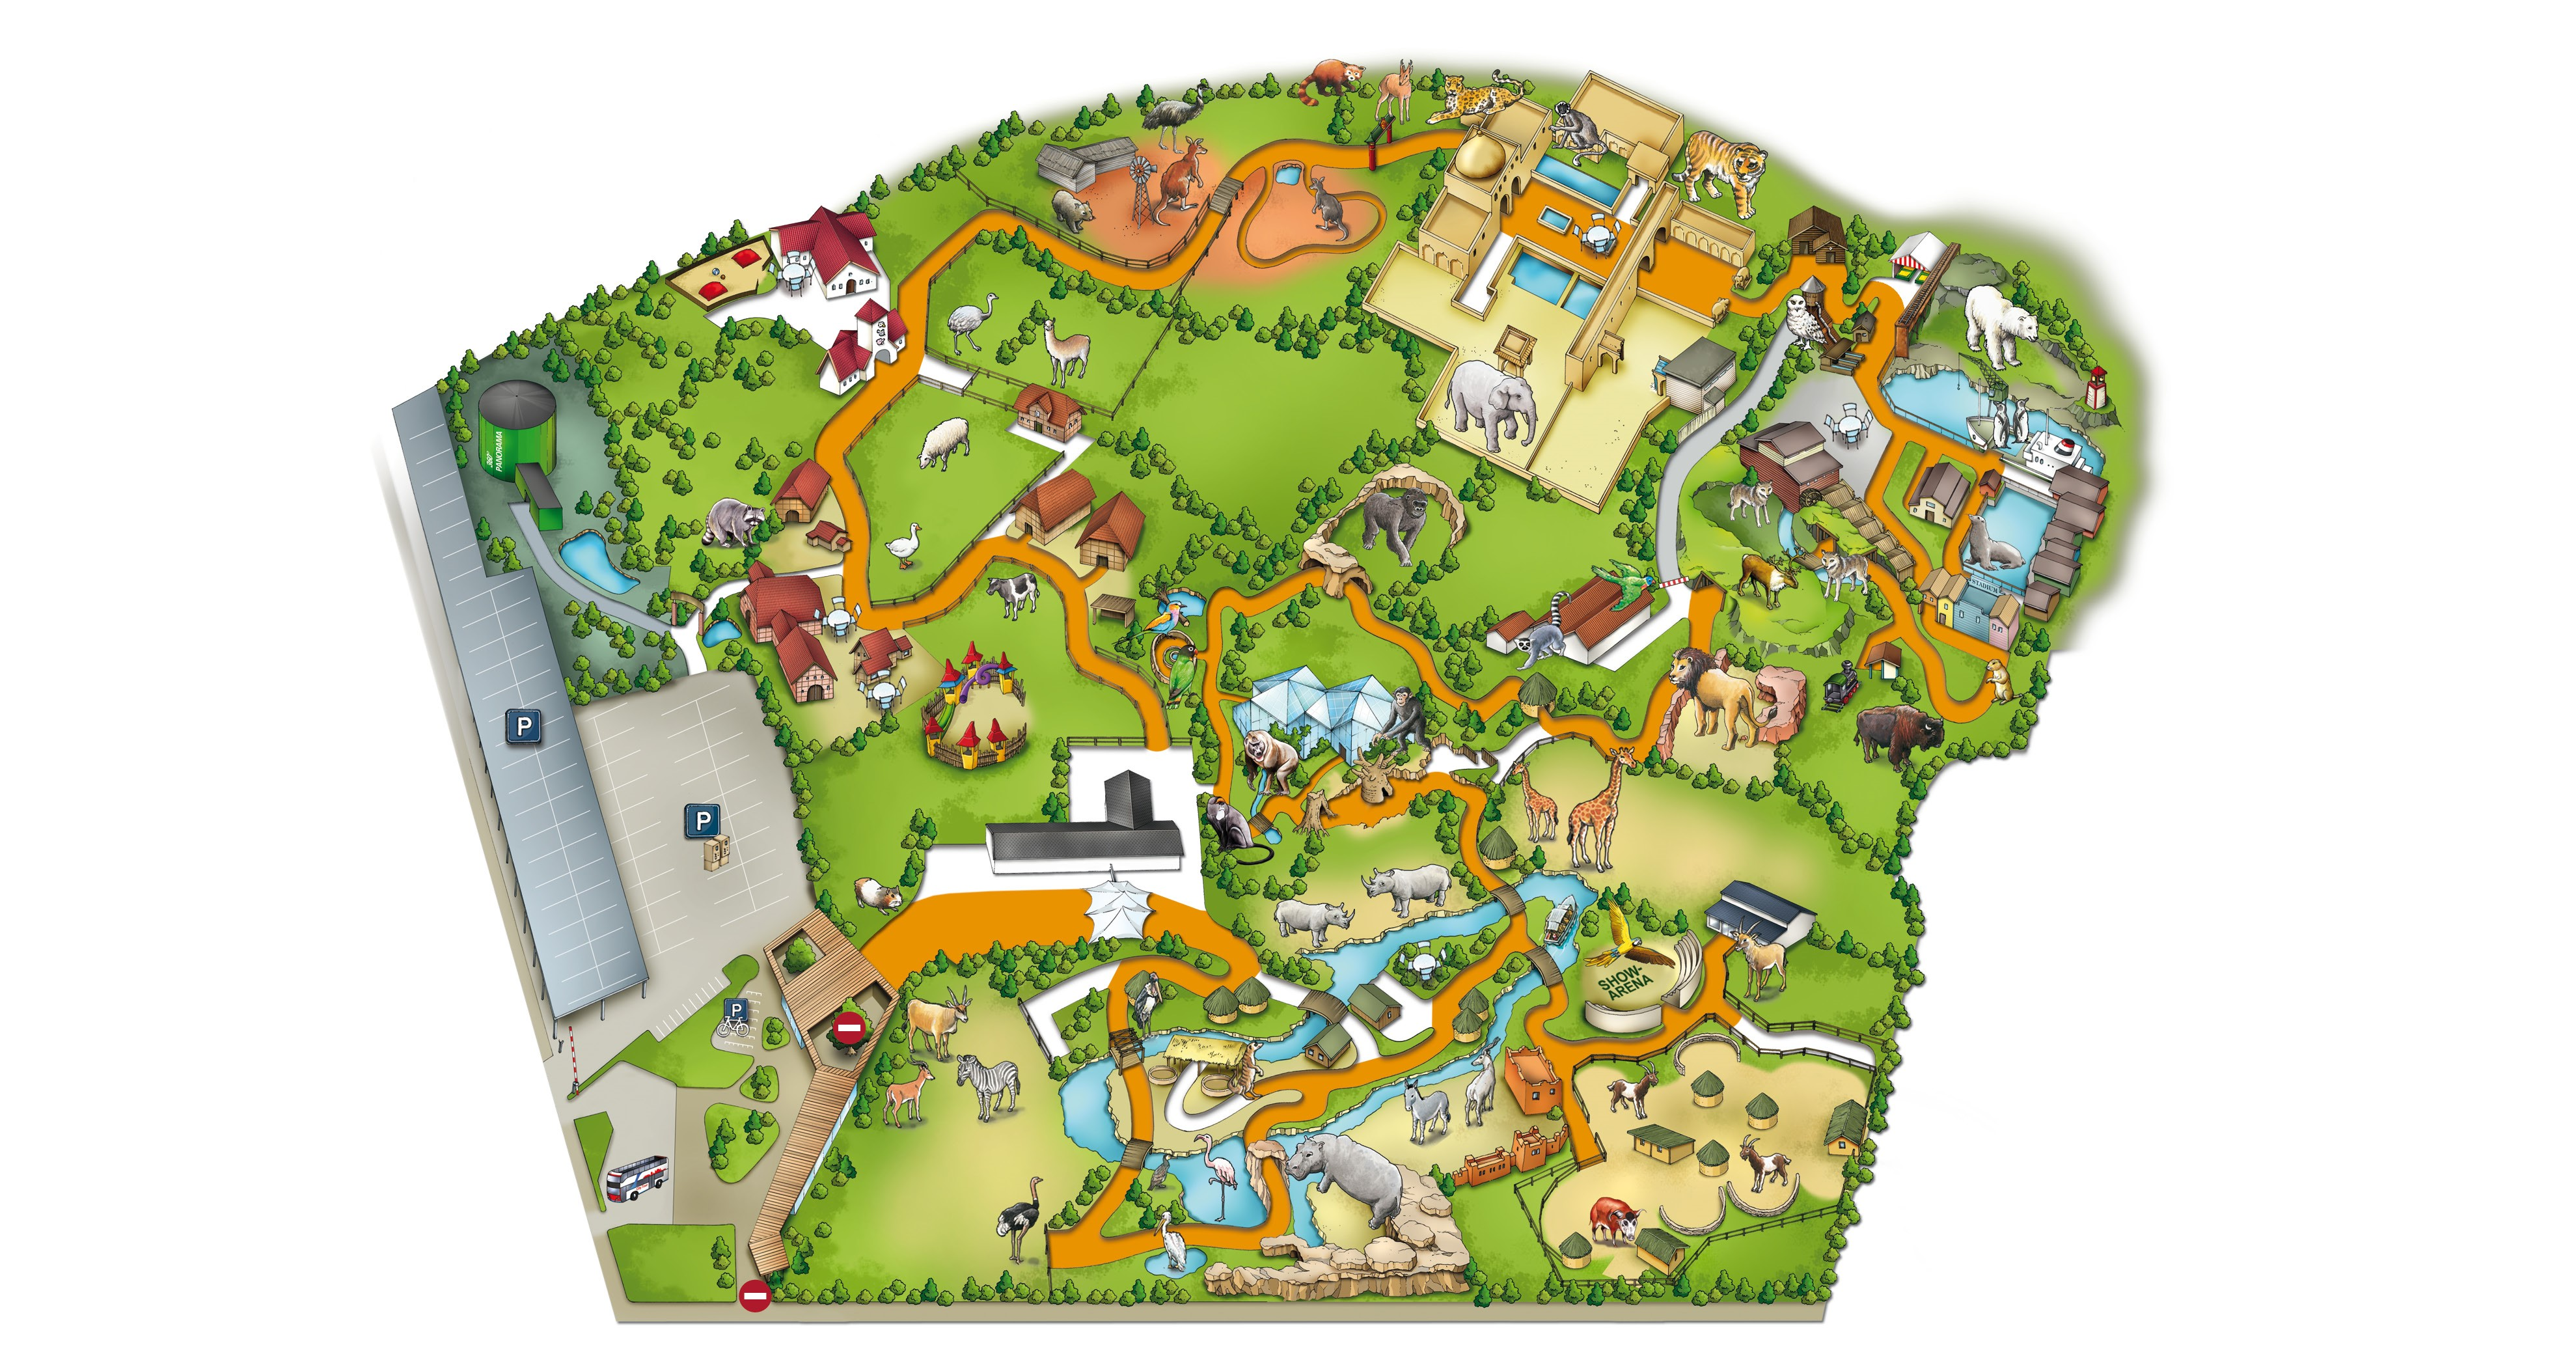 1900x1000-zoo-plan-sommer-2019-